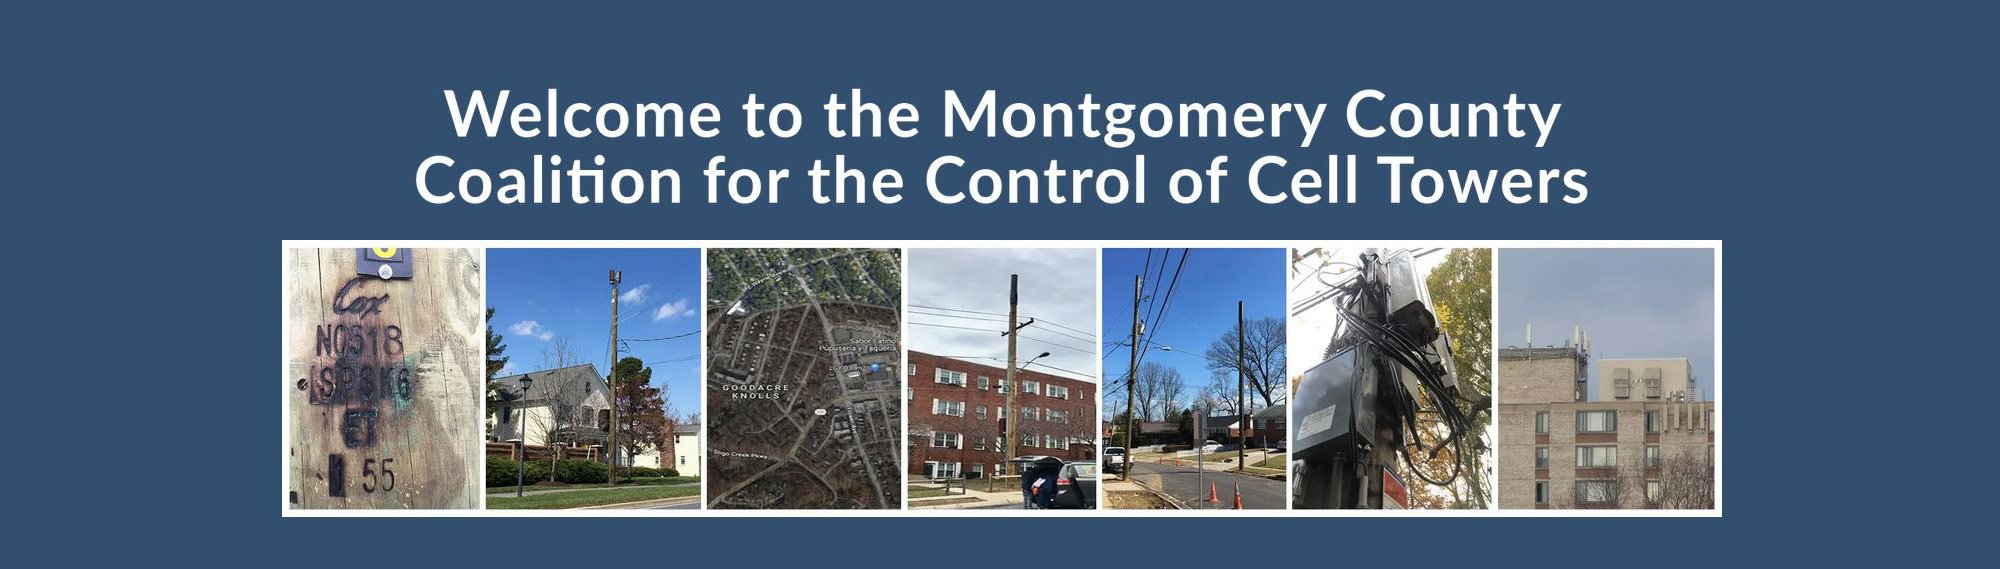 Welcome to the Montgomery County Coalition for the Control of Cell Towers Banner